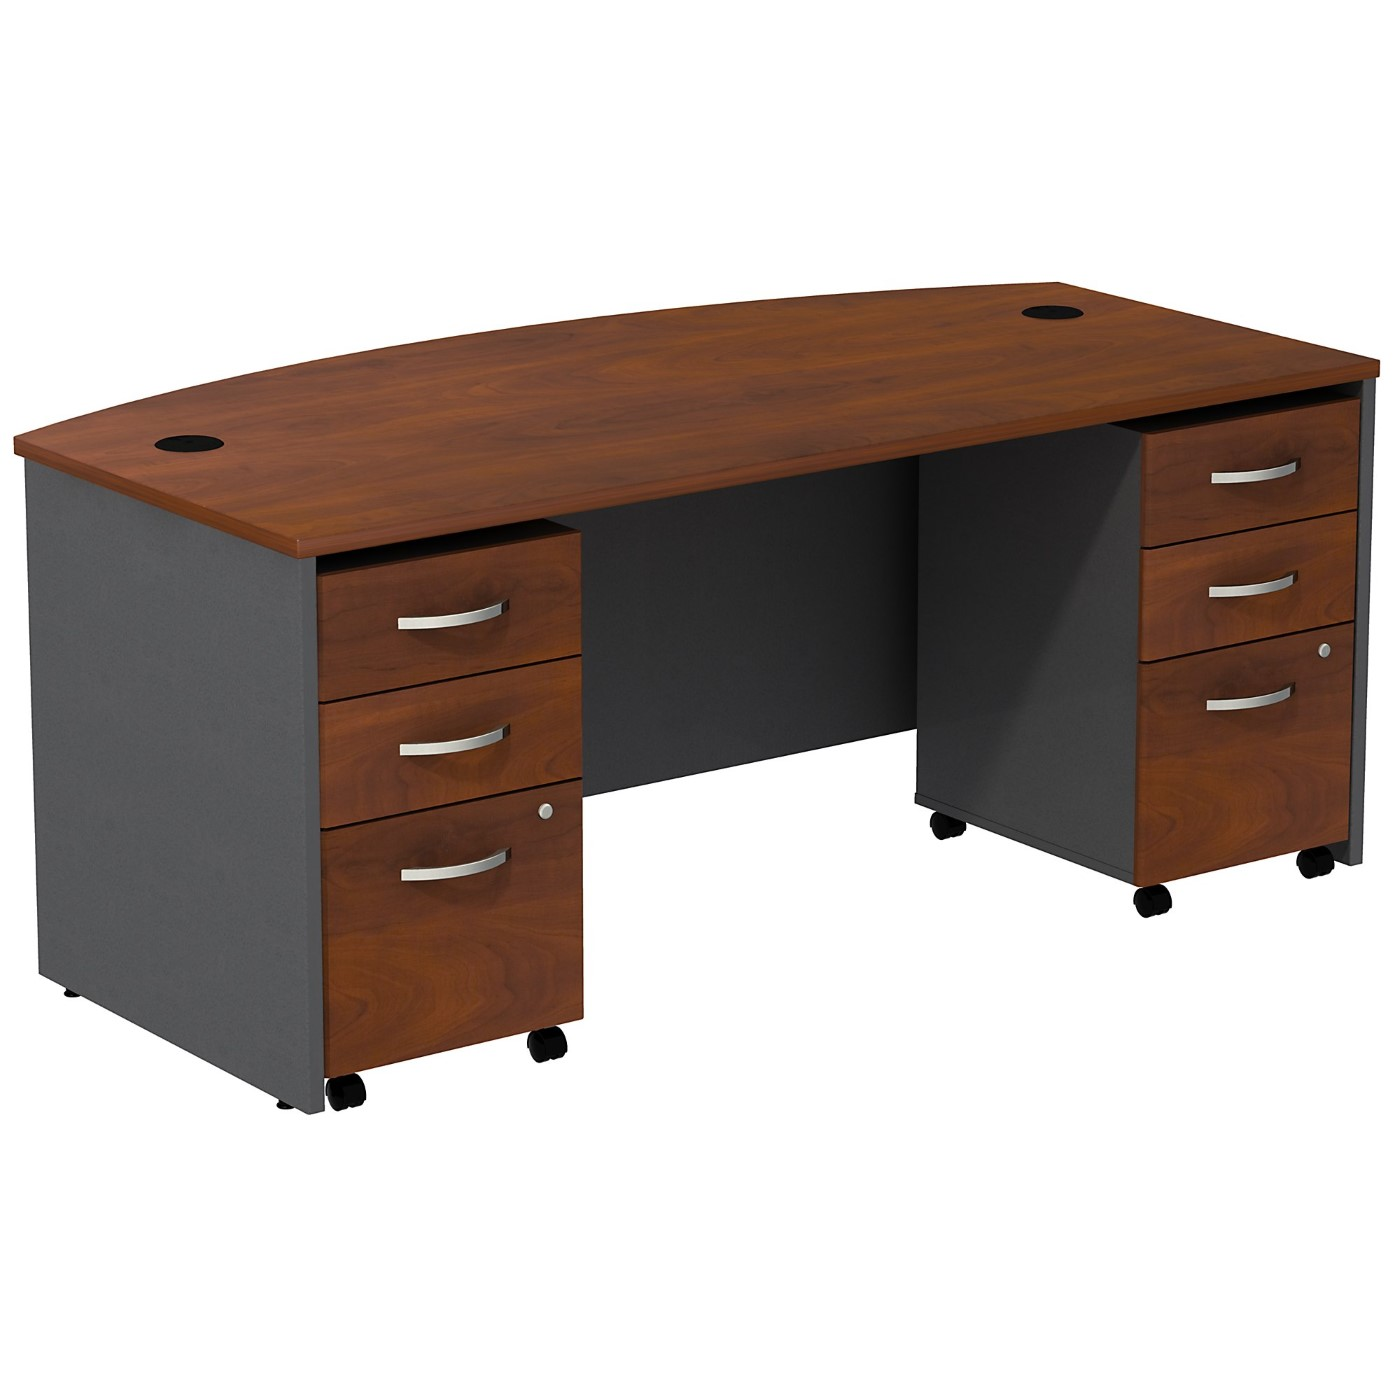 BUSH BUSINESS FURNITURE SERIES C BOW FRONT DESK WITH (2) 3 DRAWER MOBILE PEDESTALS. FREE SHIPPING